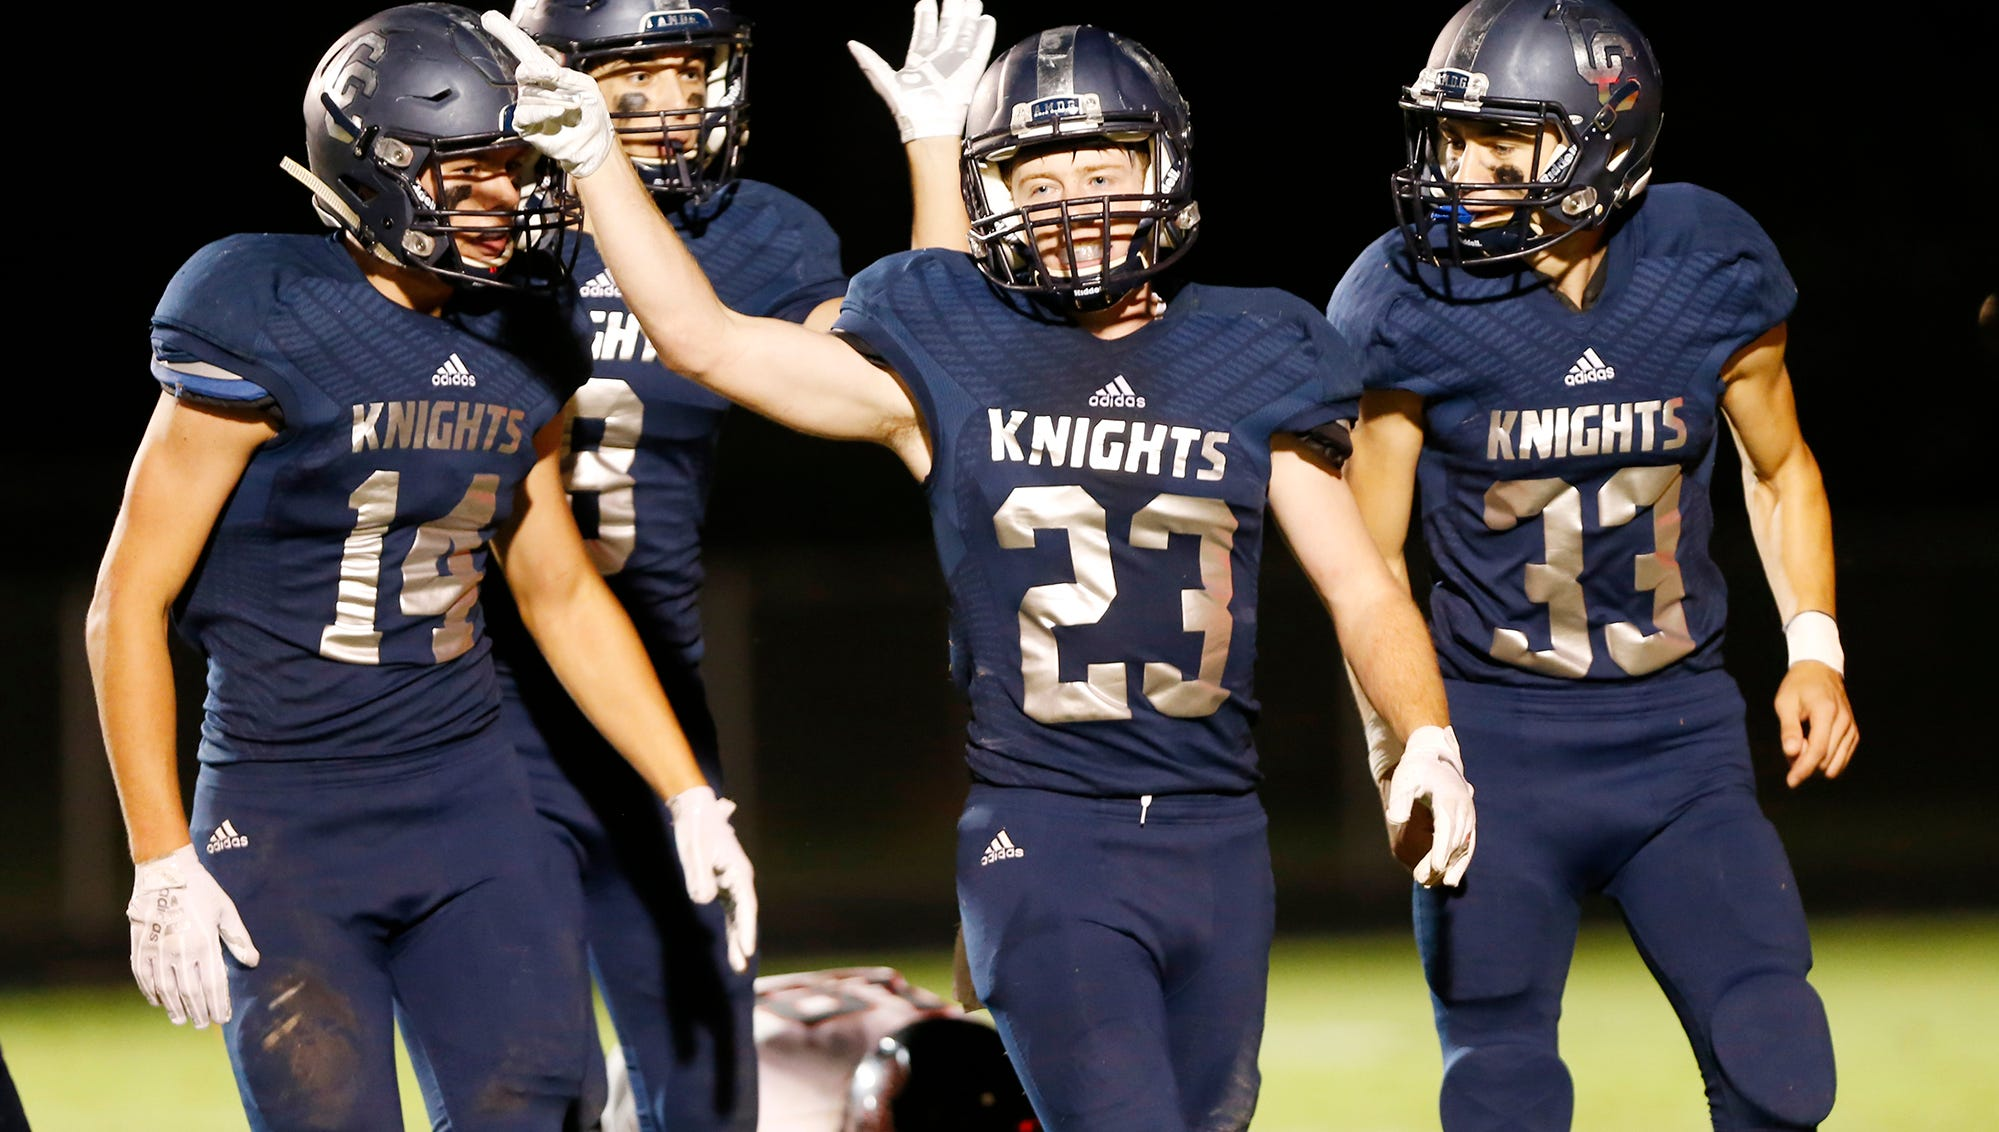 Daniel Roach (23) celebrates with his Central Catholic teammates after intercepting a Rensselaer pass in the second quarter Friday, September 21, 2018, in Lafayette.